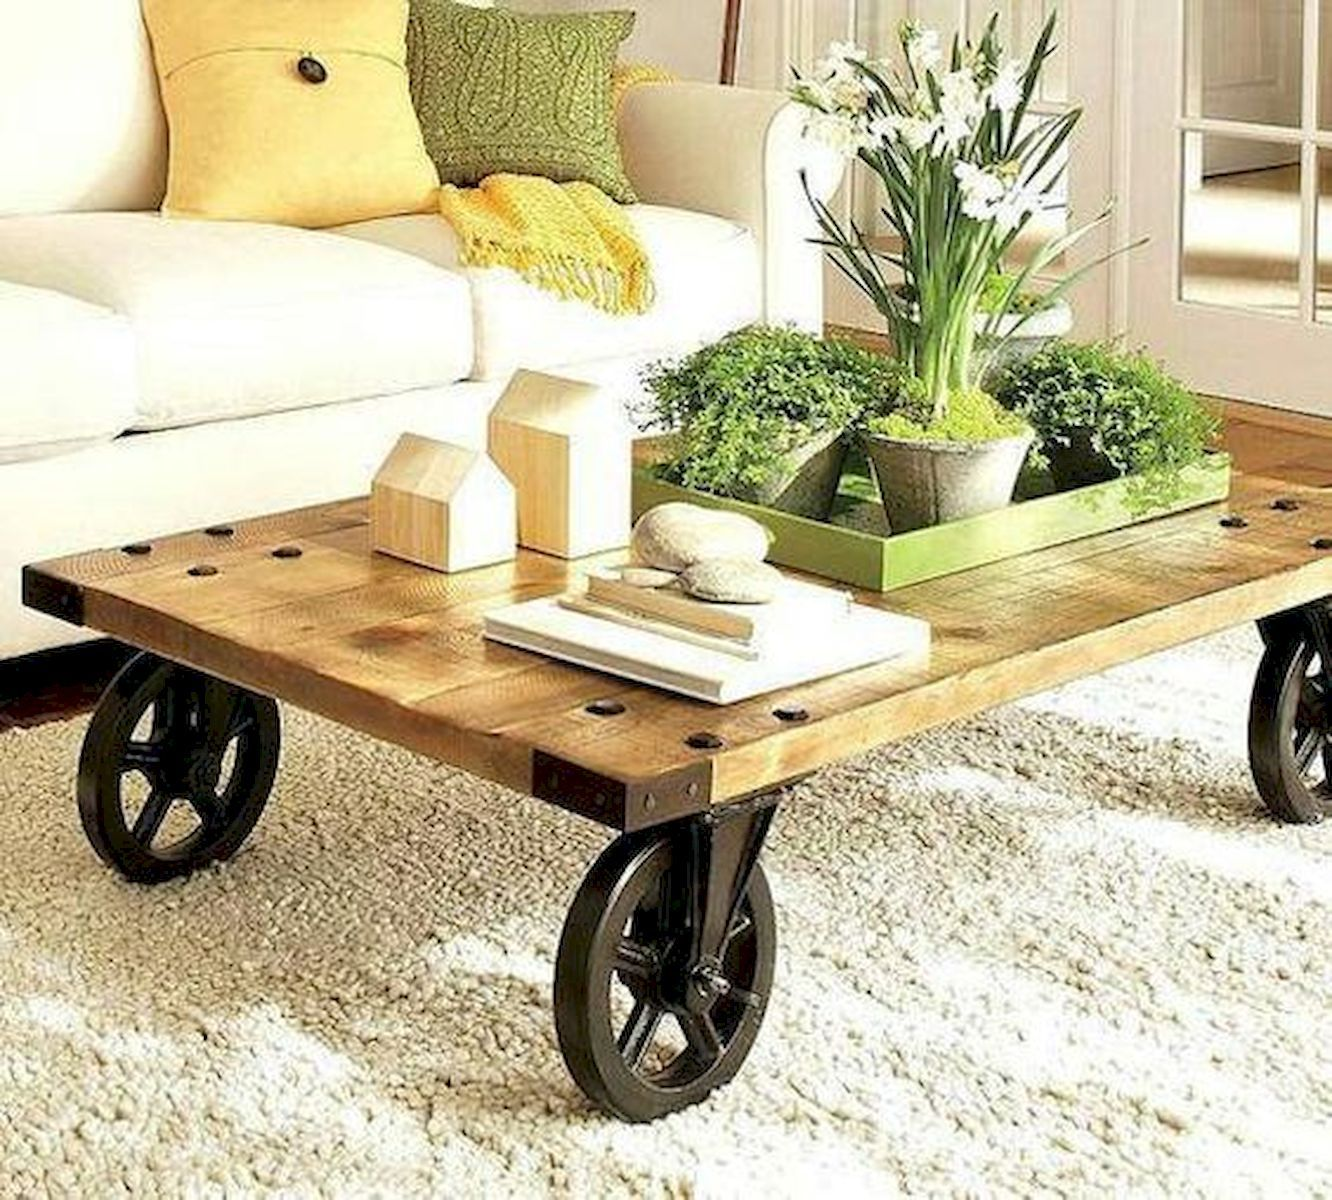 60 Fantastic Diy Projects Wood Furniture Ideas Rustic Wooden Coffee Table Funky Home Decor Rustic Coffee Tables [ 1200 x 1332 Pixel ]